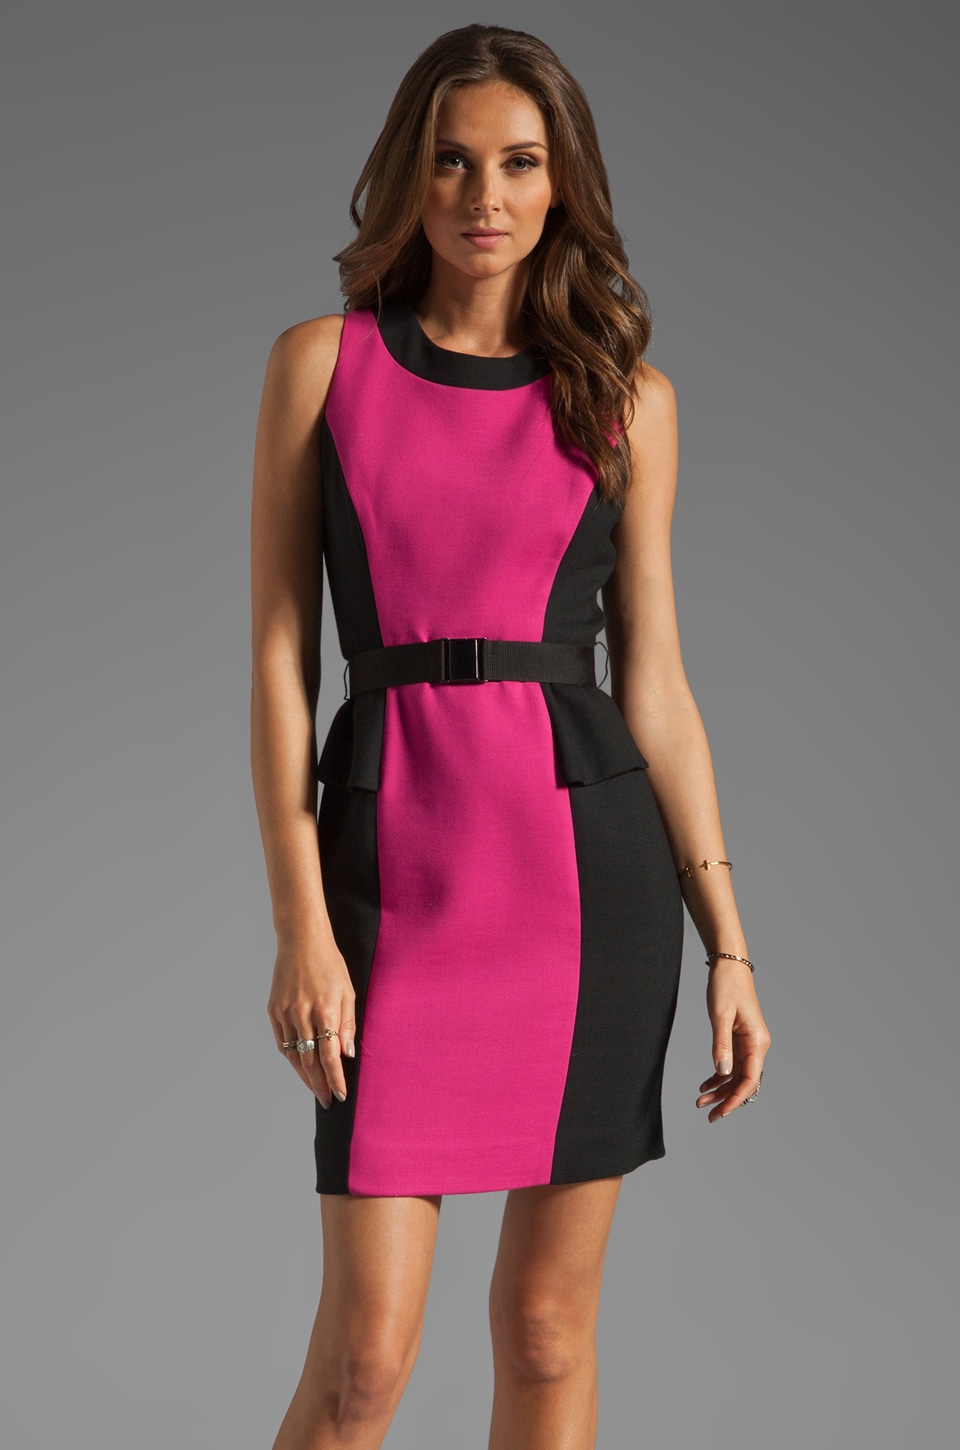 MILLY Doubleweave Olivia Belted Dress in Fuchsia